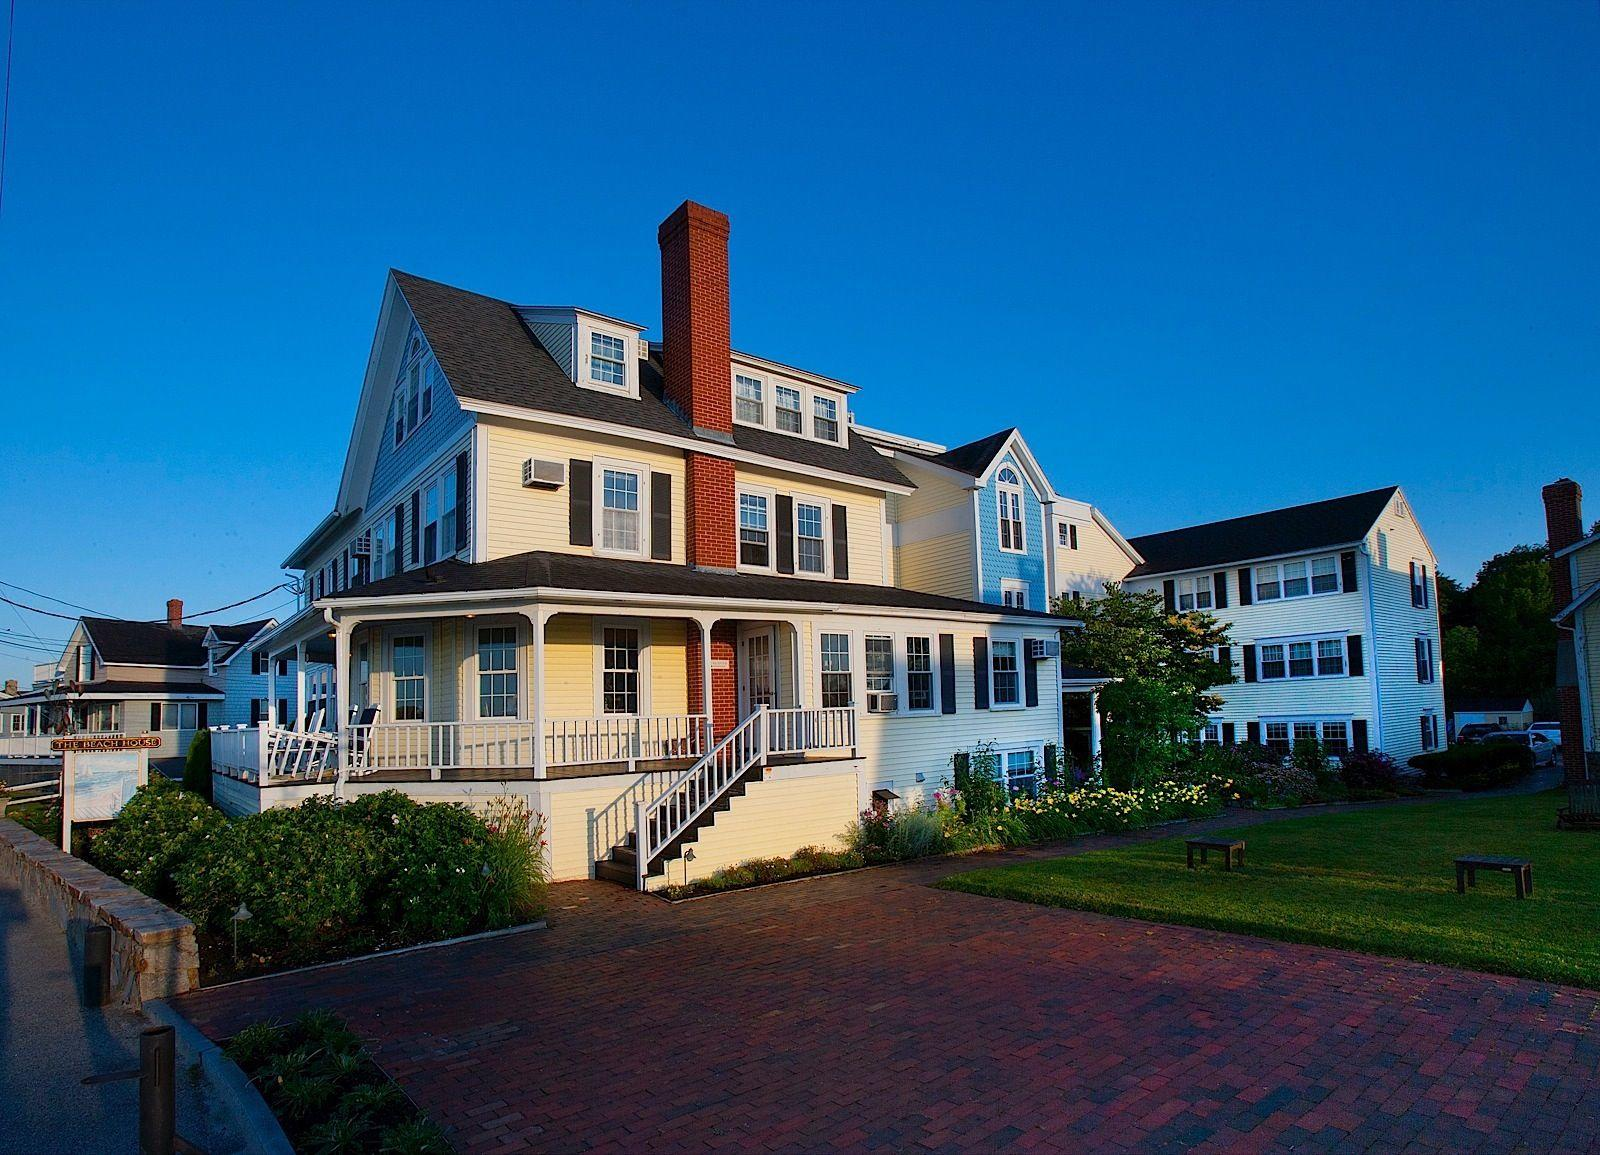 Beach House Inn Exterior